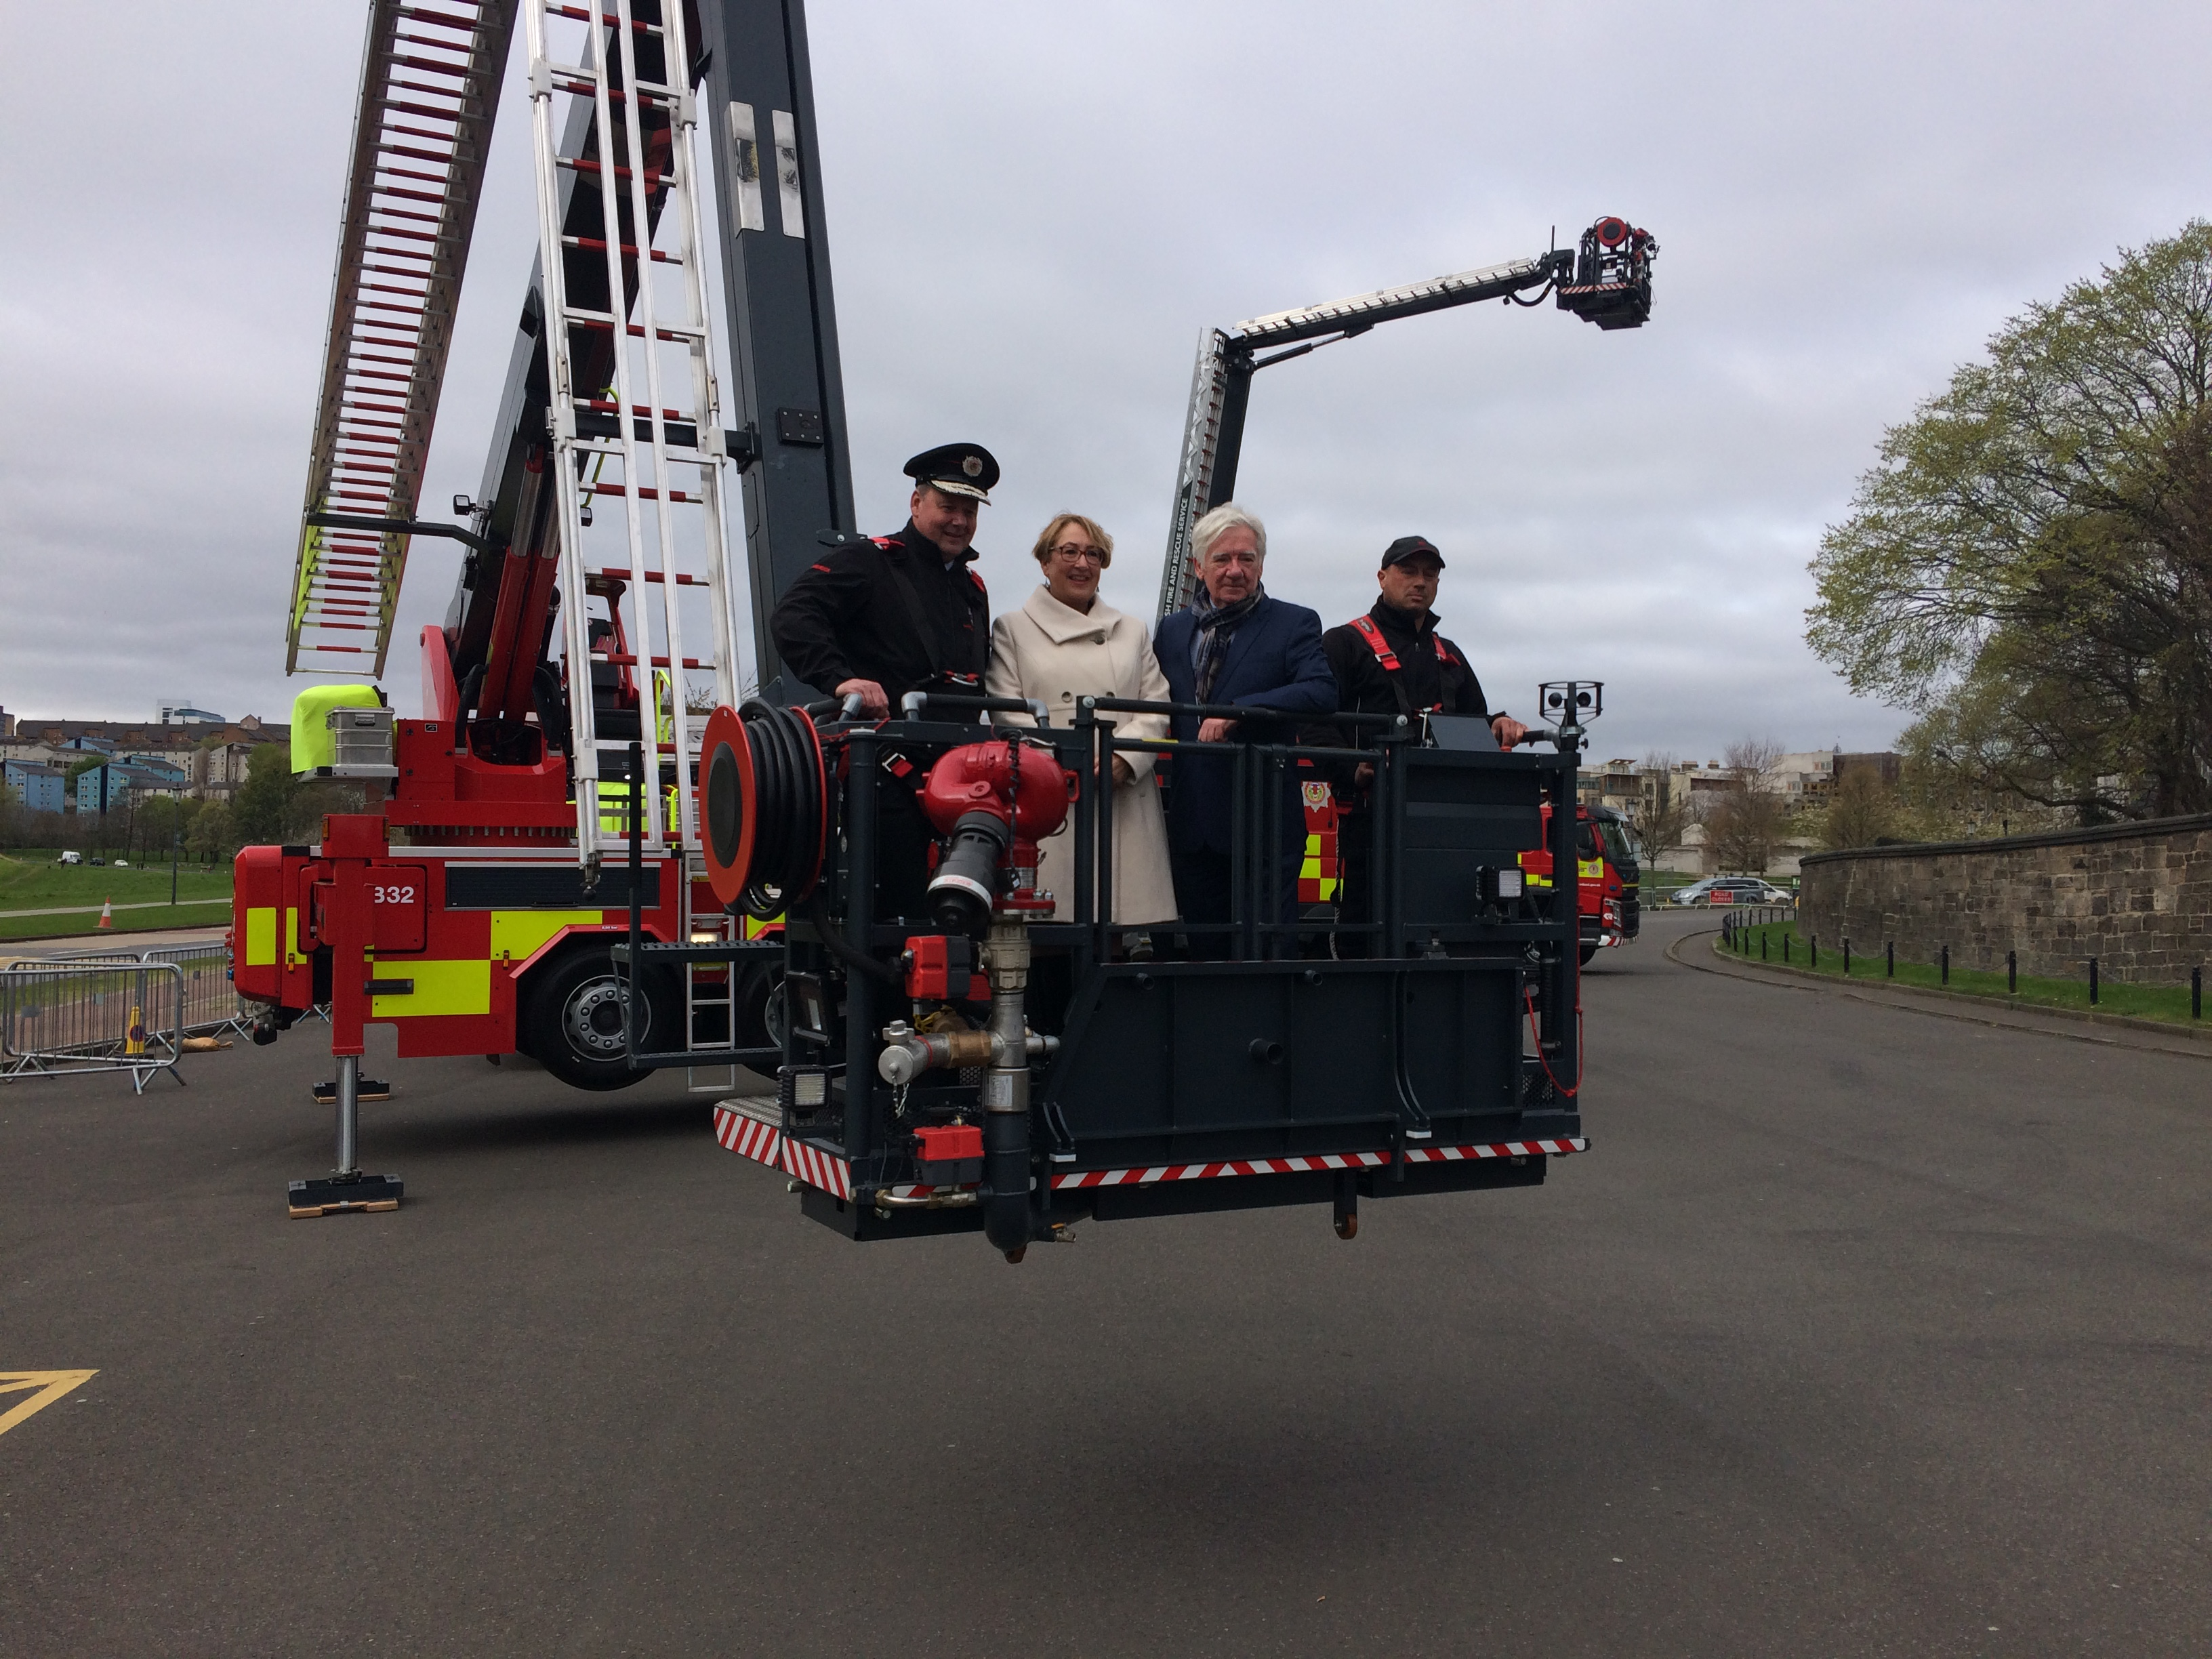 Arrival of New Fire Appliances